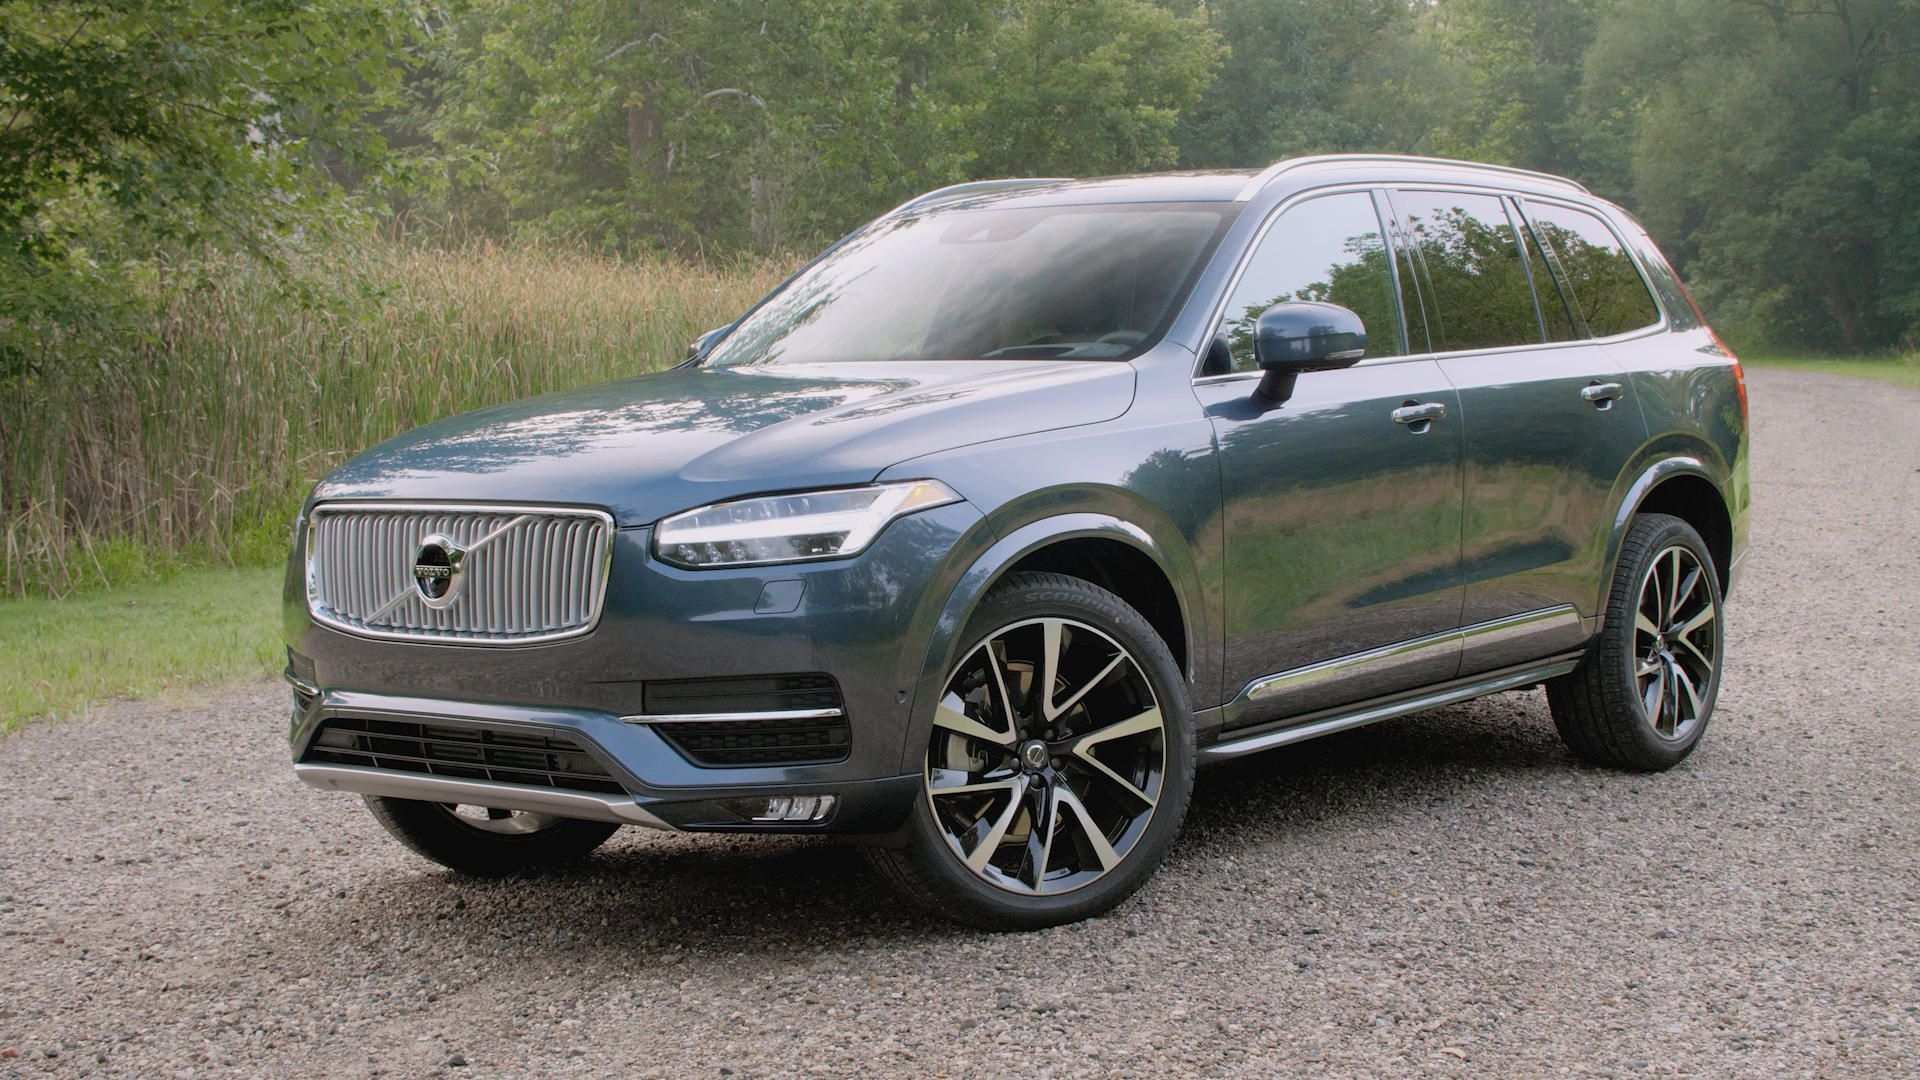 98 Gallery of New Volvo No Gas 2019 Specs Specs by New Volvo No Gas 2019 Specs